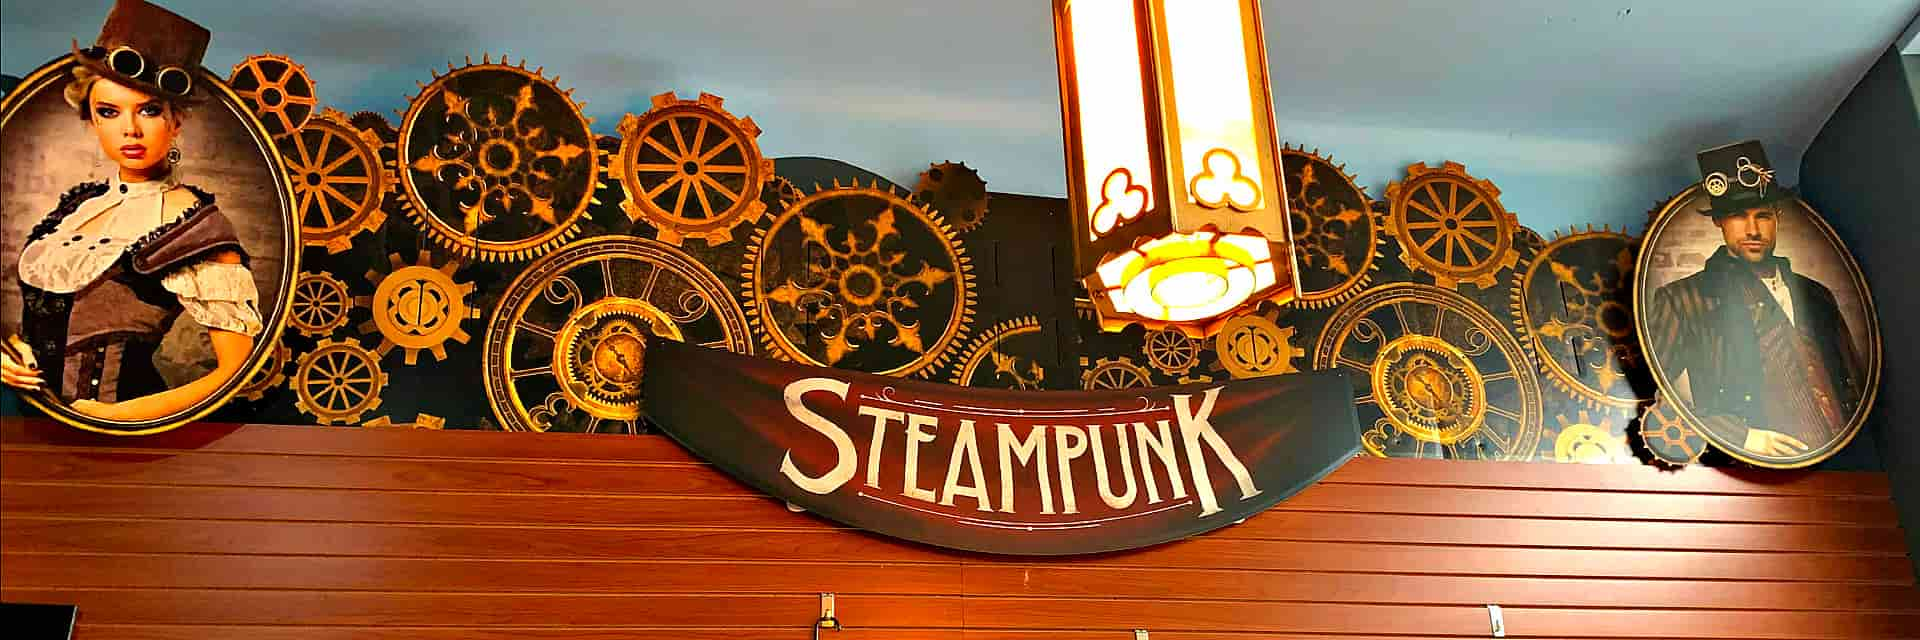 banner of steampunk